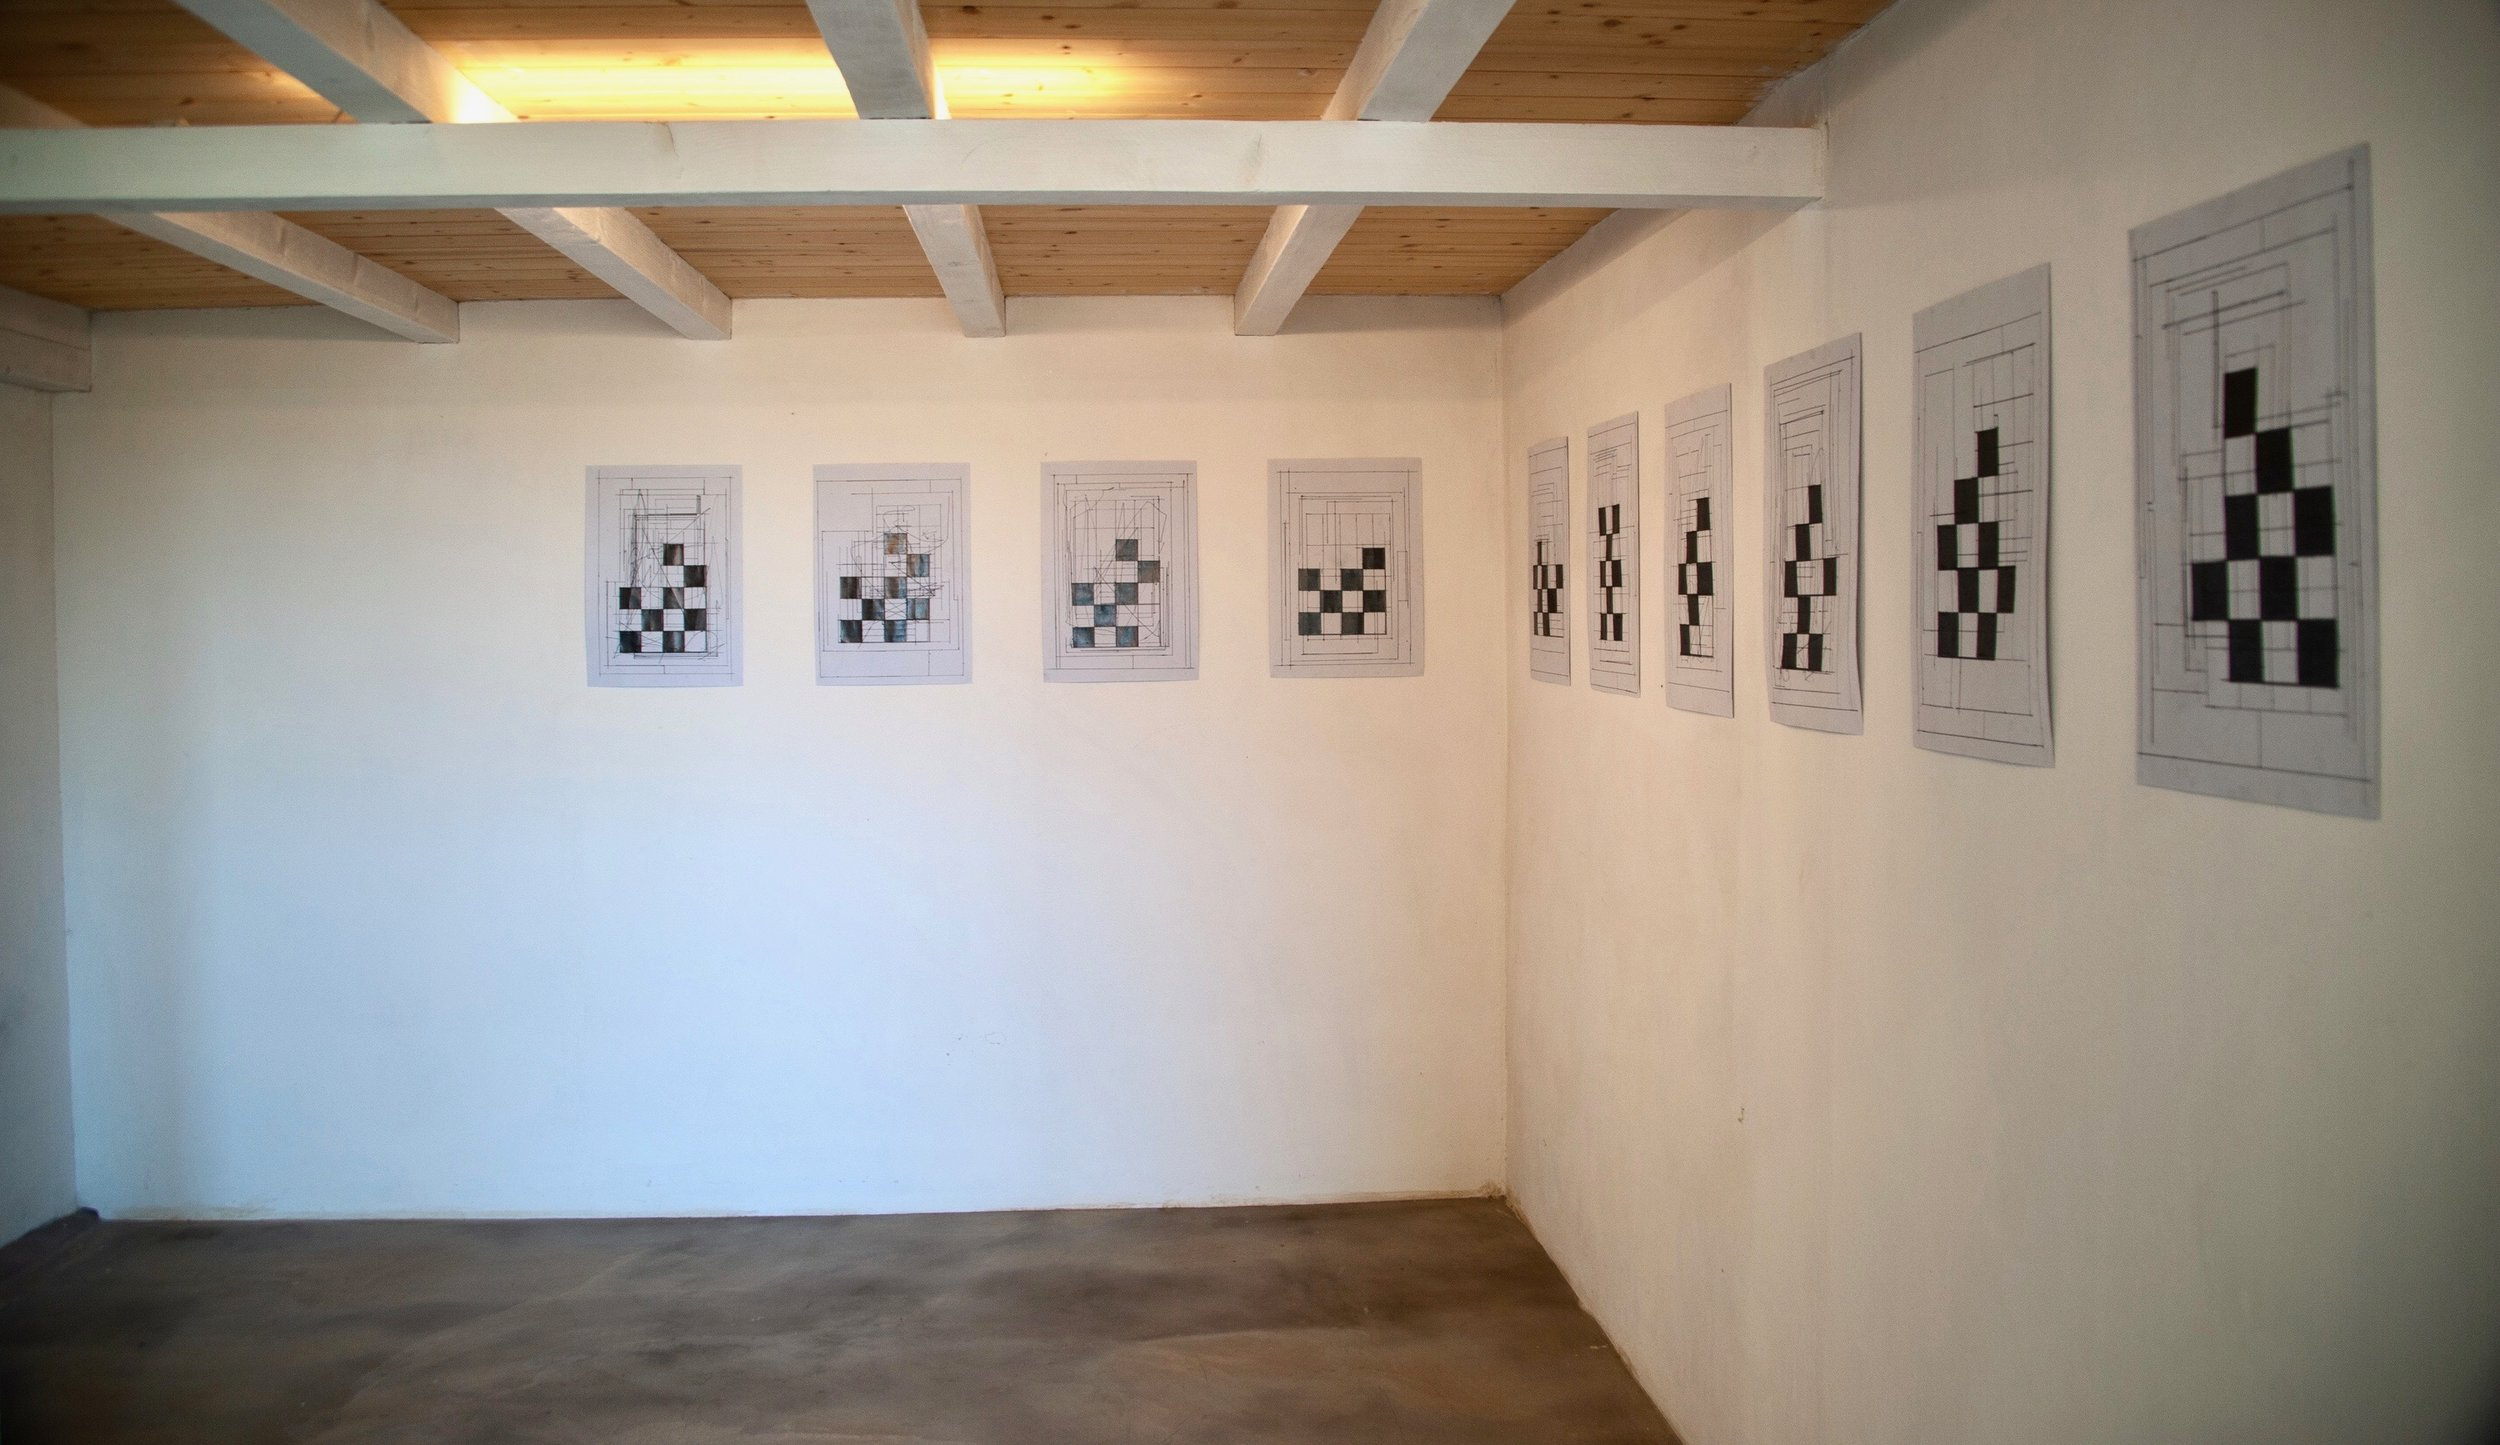 Installation view of  Borderline  at La Vallonea Works by Sebastian Lloyd Rees